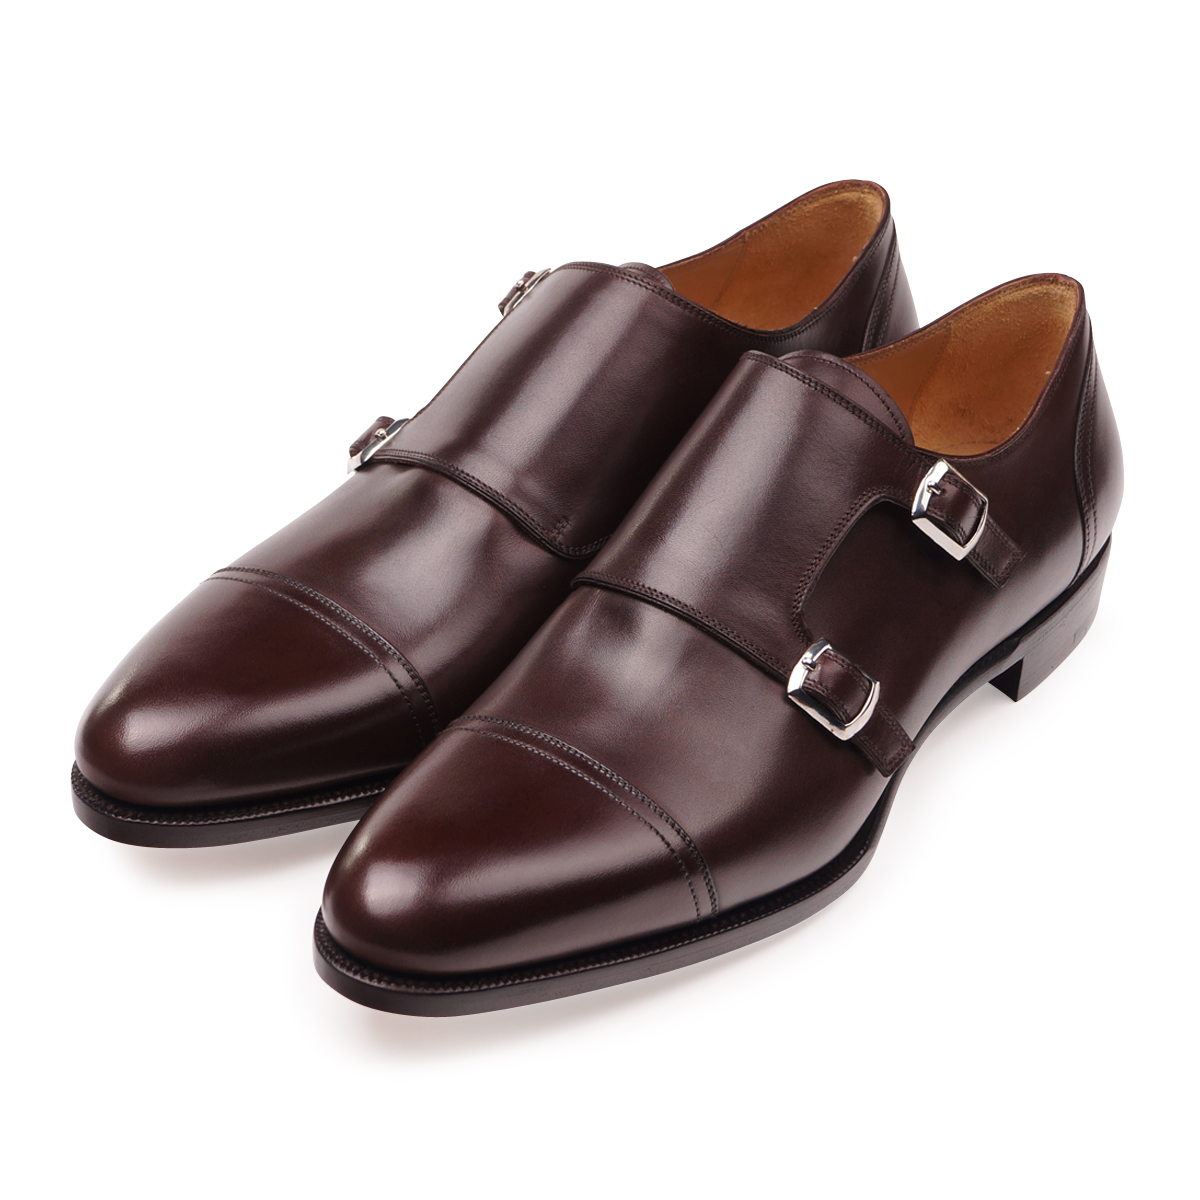 Brown Box Calf Double Monk Straps